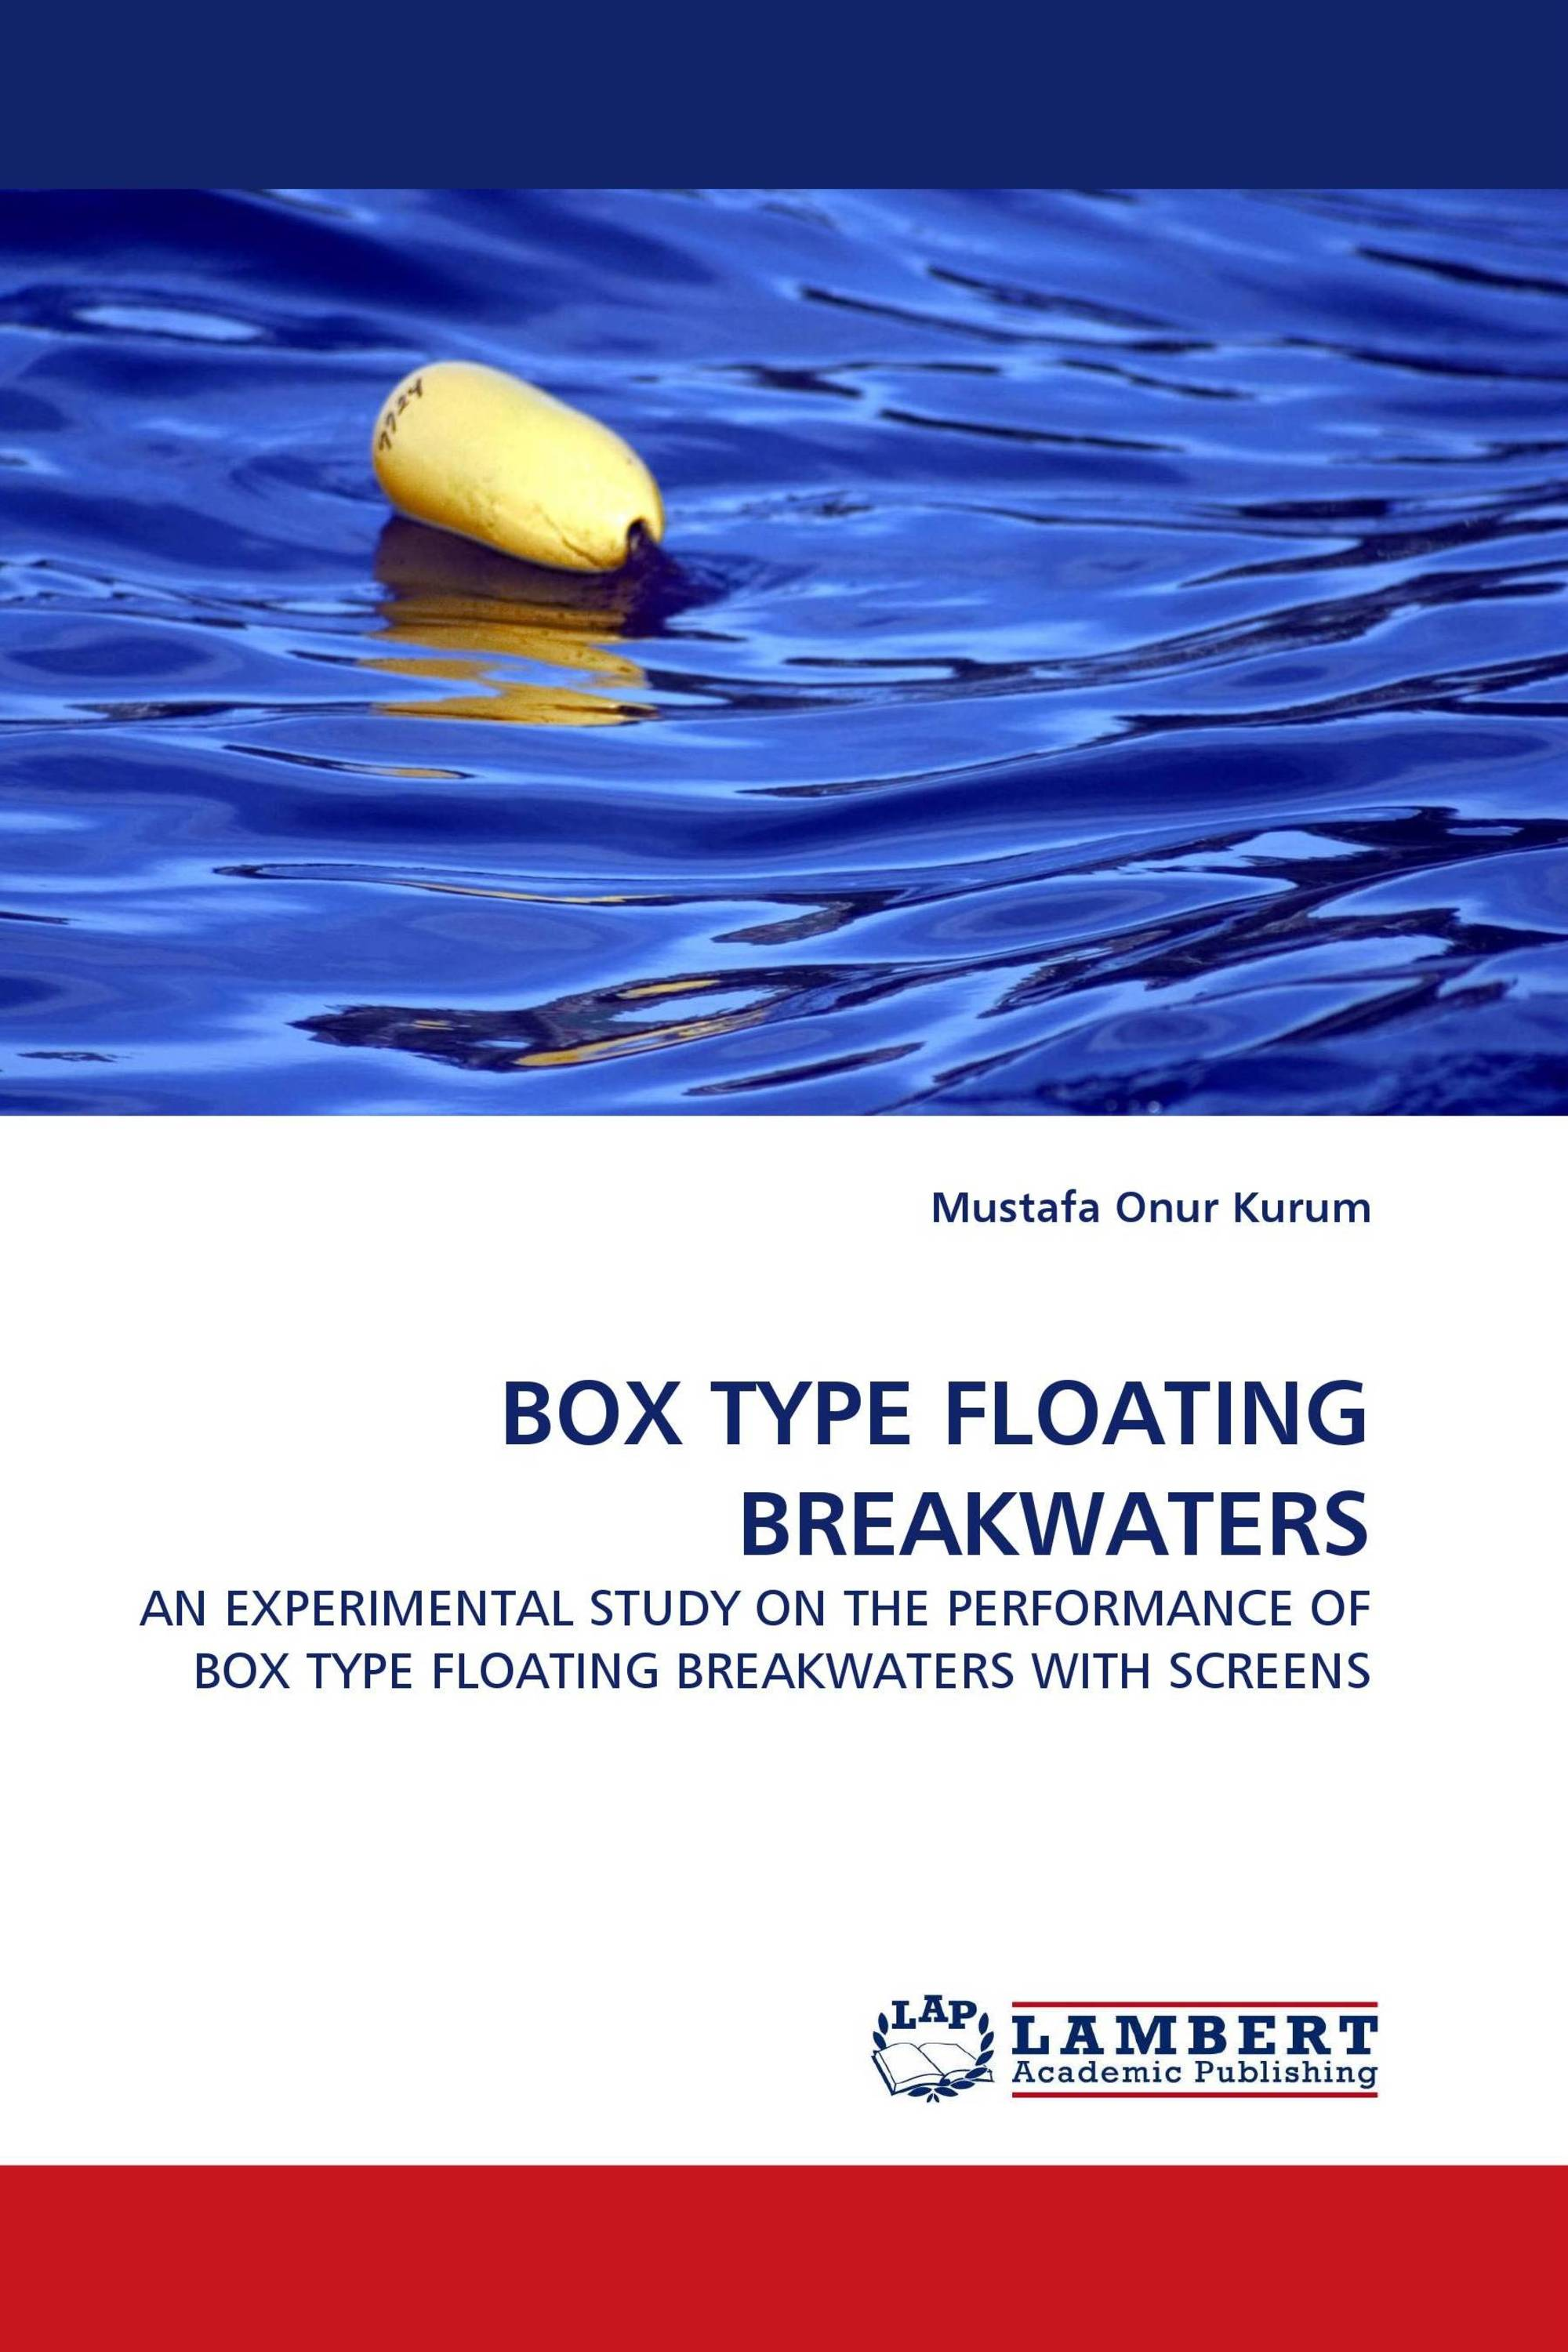 BOX TYPE FLOATING BREAKWATERS